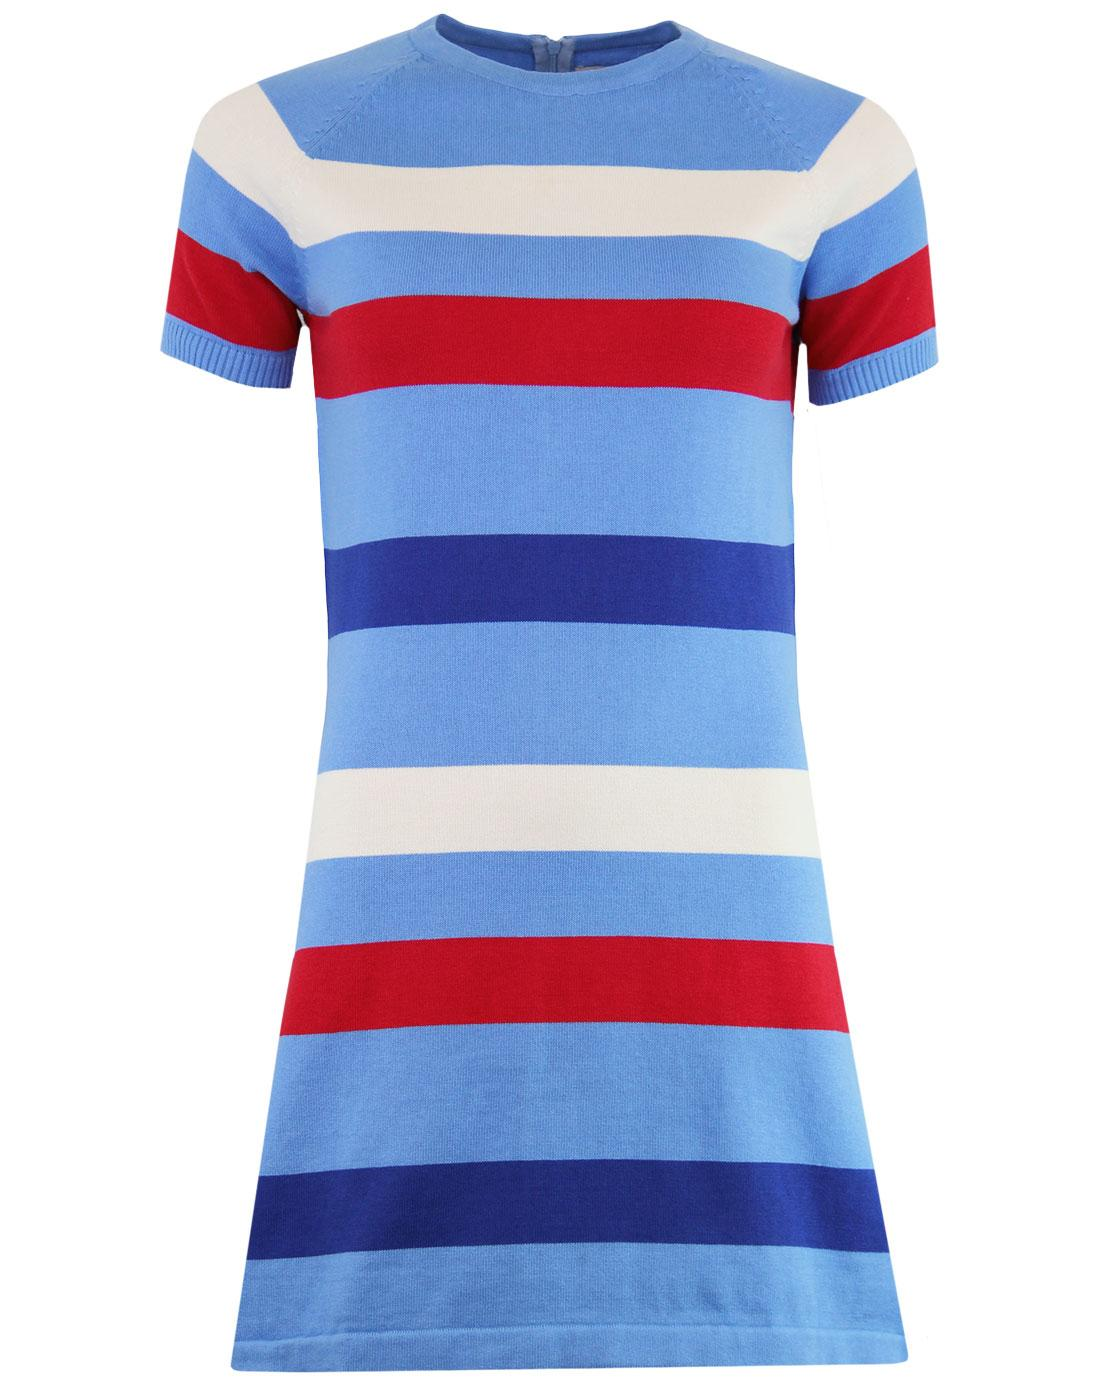 Polly MADCAP ENGLAND 60s Mod Stripe Knitted Dress